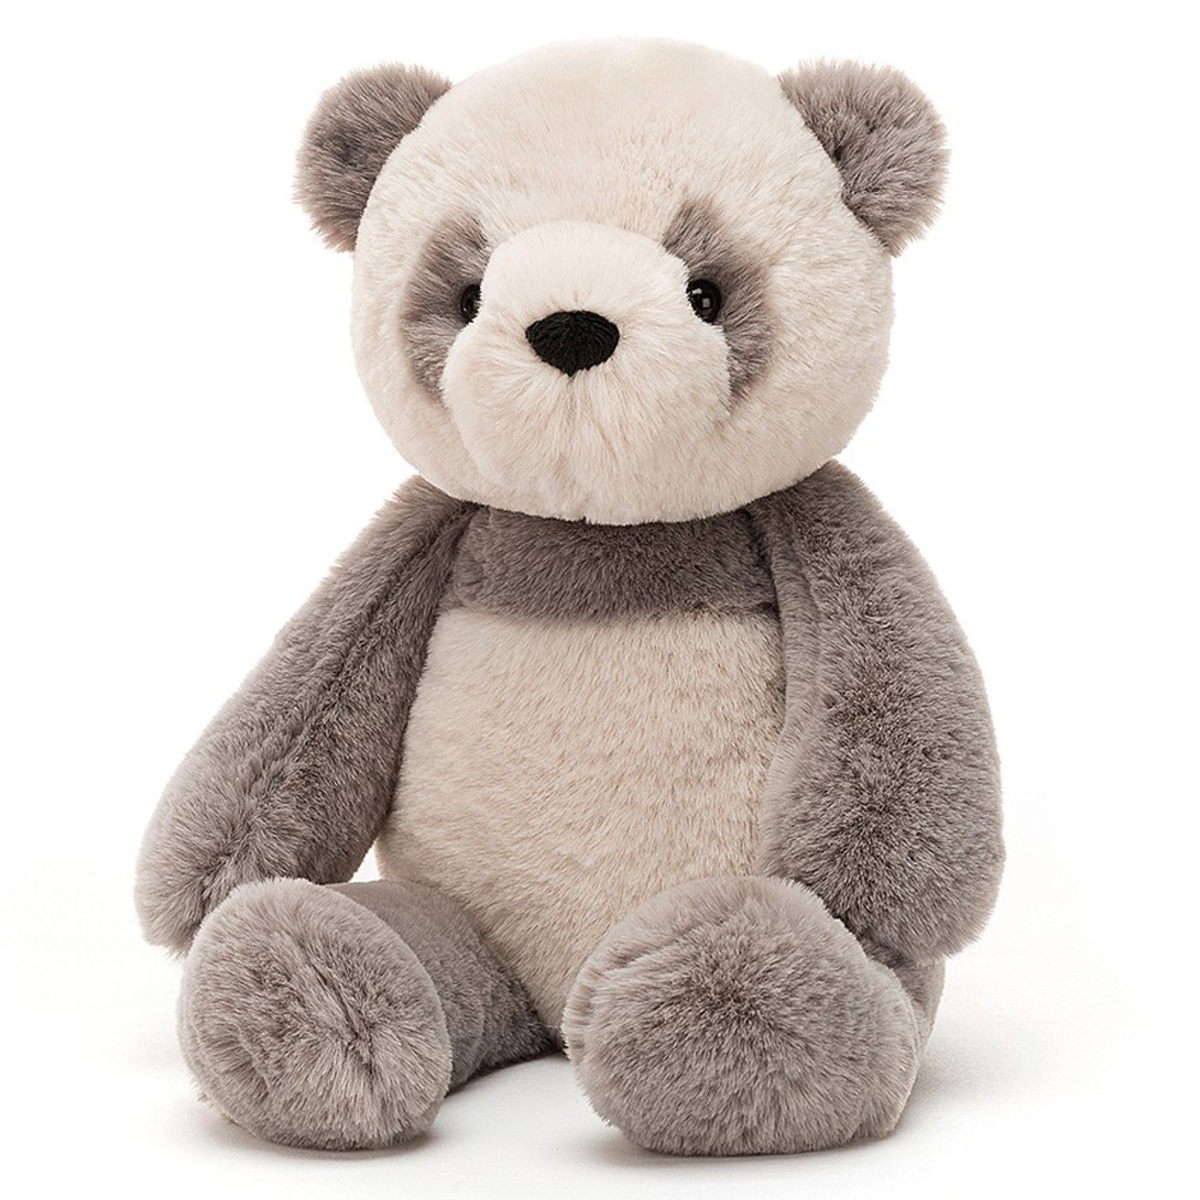 Peluche Buckley Panda - Medium Peluche Panda 34 cm